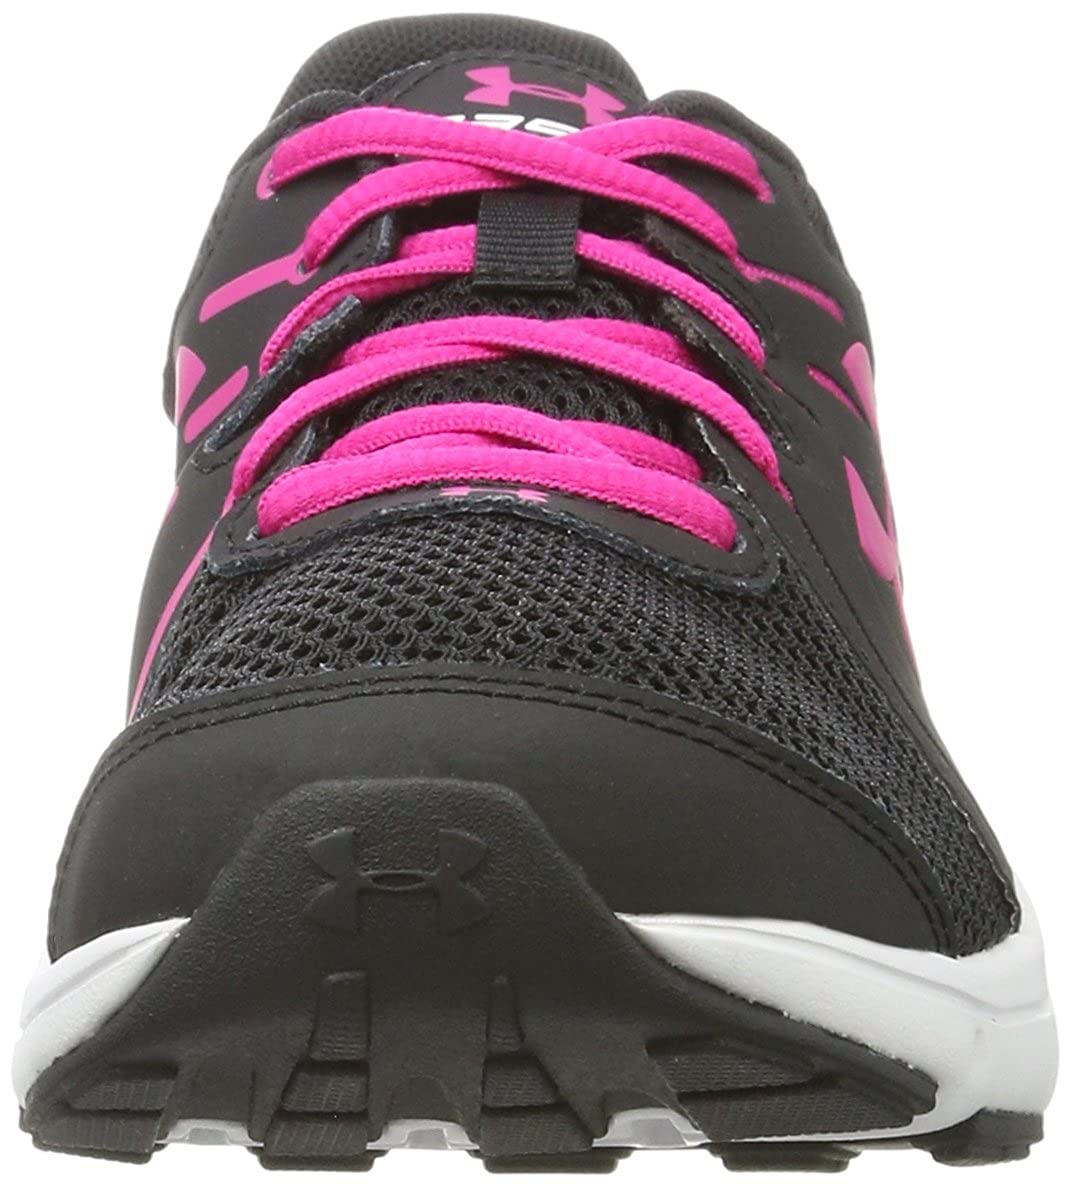 Man's/Woman's Under Armour Women's Moderate Moderate Moderate price Upper material have fun 115b3d